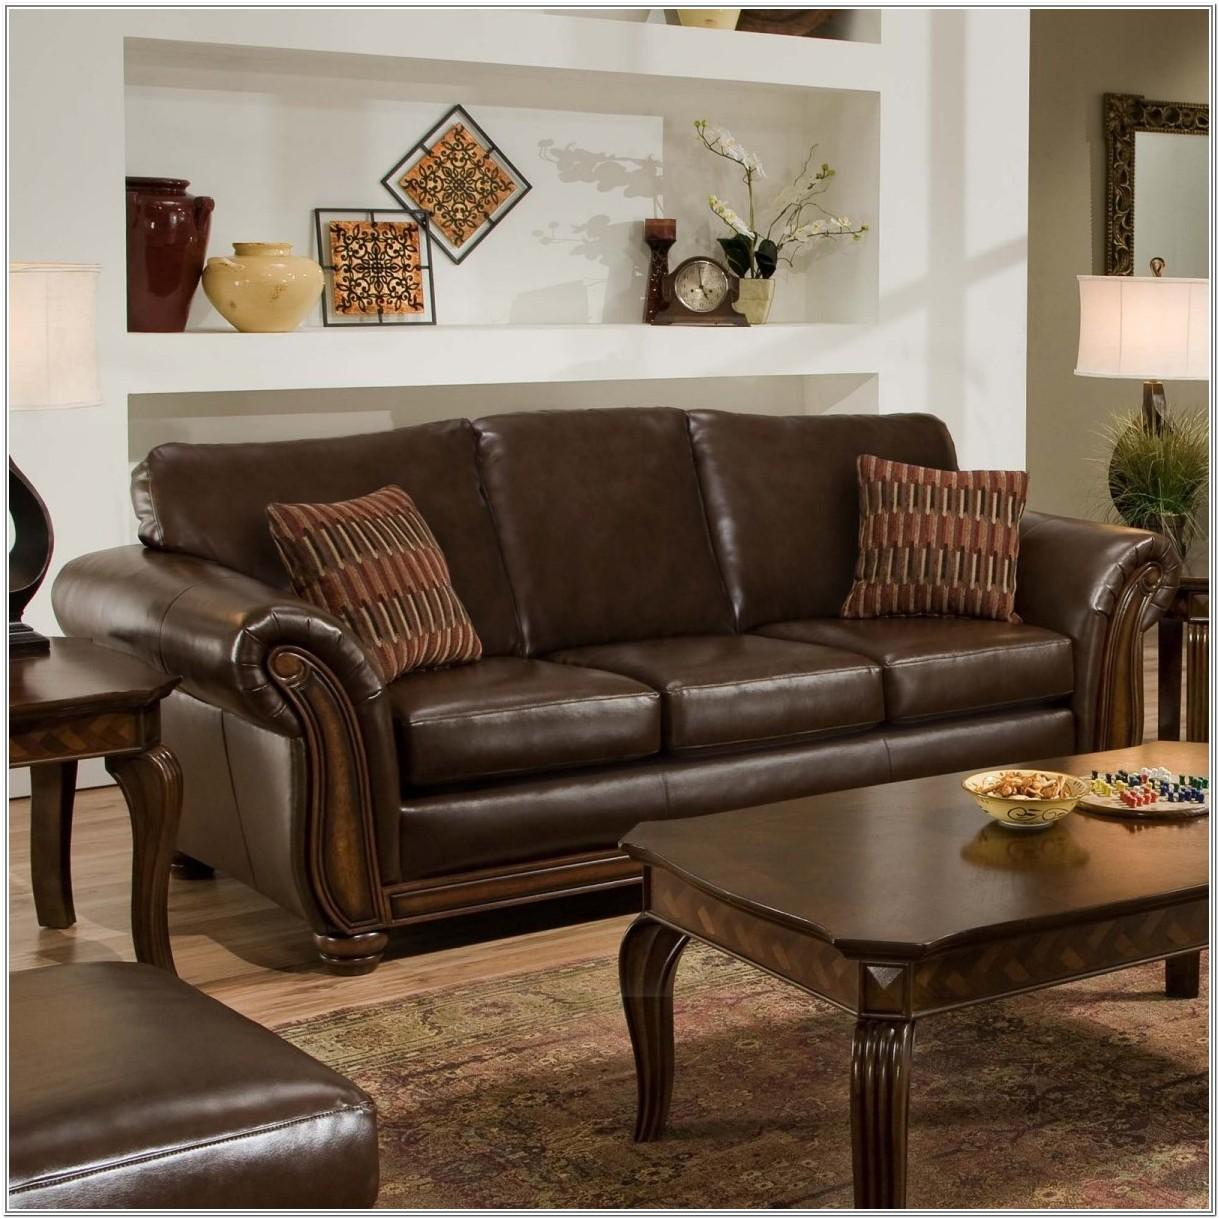 Living Room Design Ideas With Brown Sofa